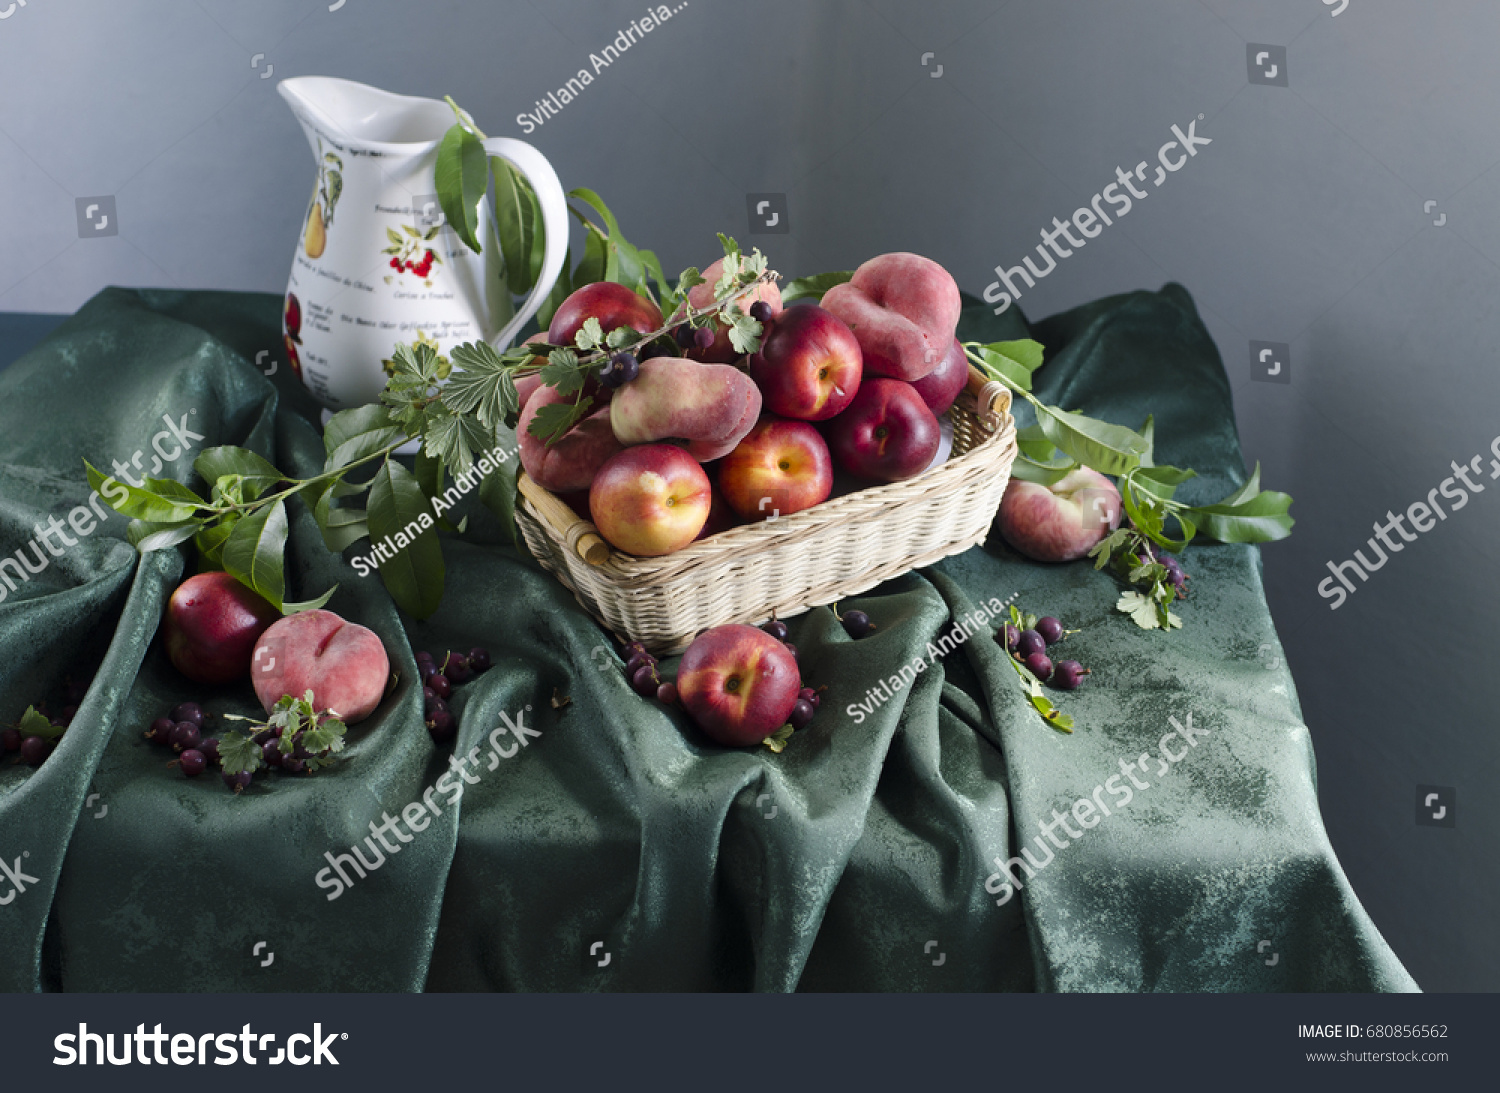 Still life with ripe peaches, berries lying on the table #680856562